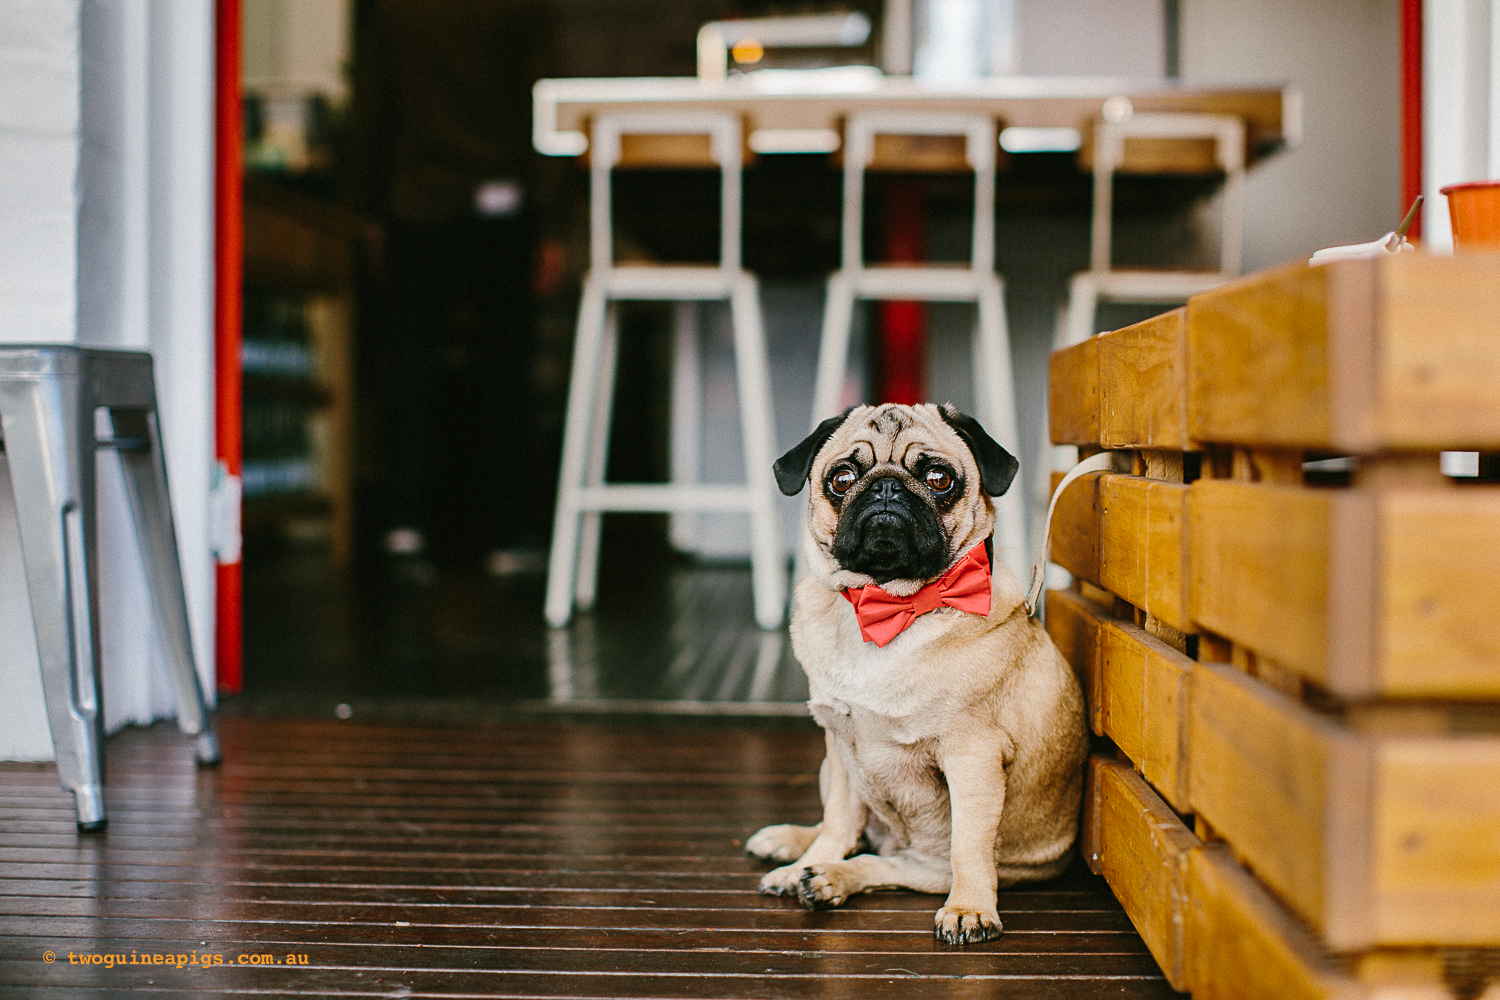 twoguineapigs_pet_photography_oh_jaffa_pug_glider_cafe_potts_point_1500-4.jpg